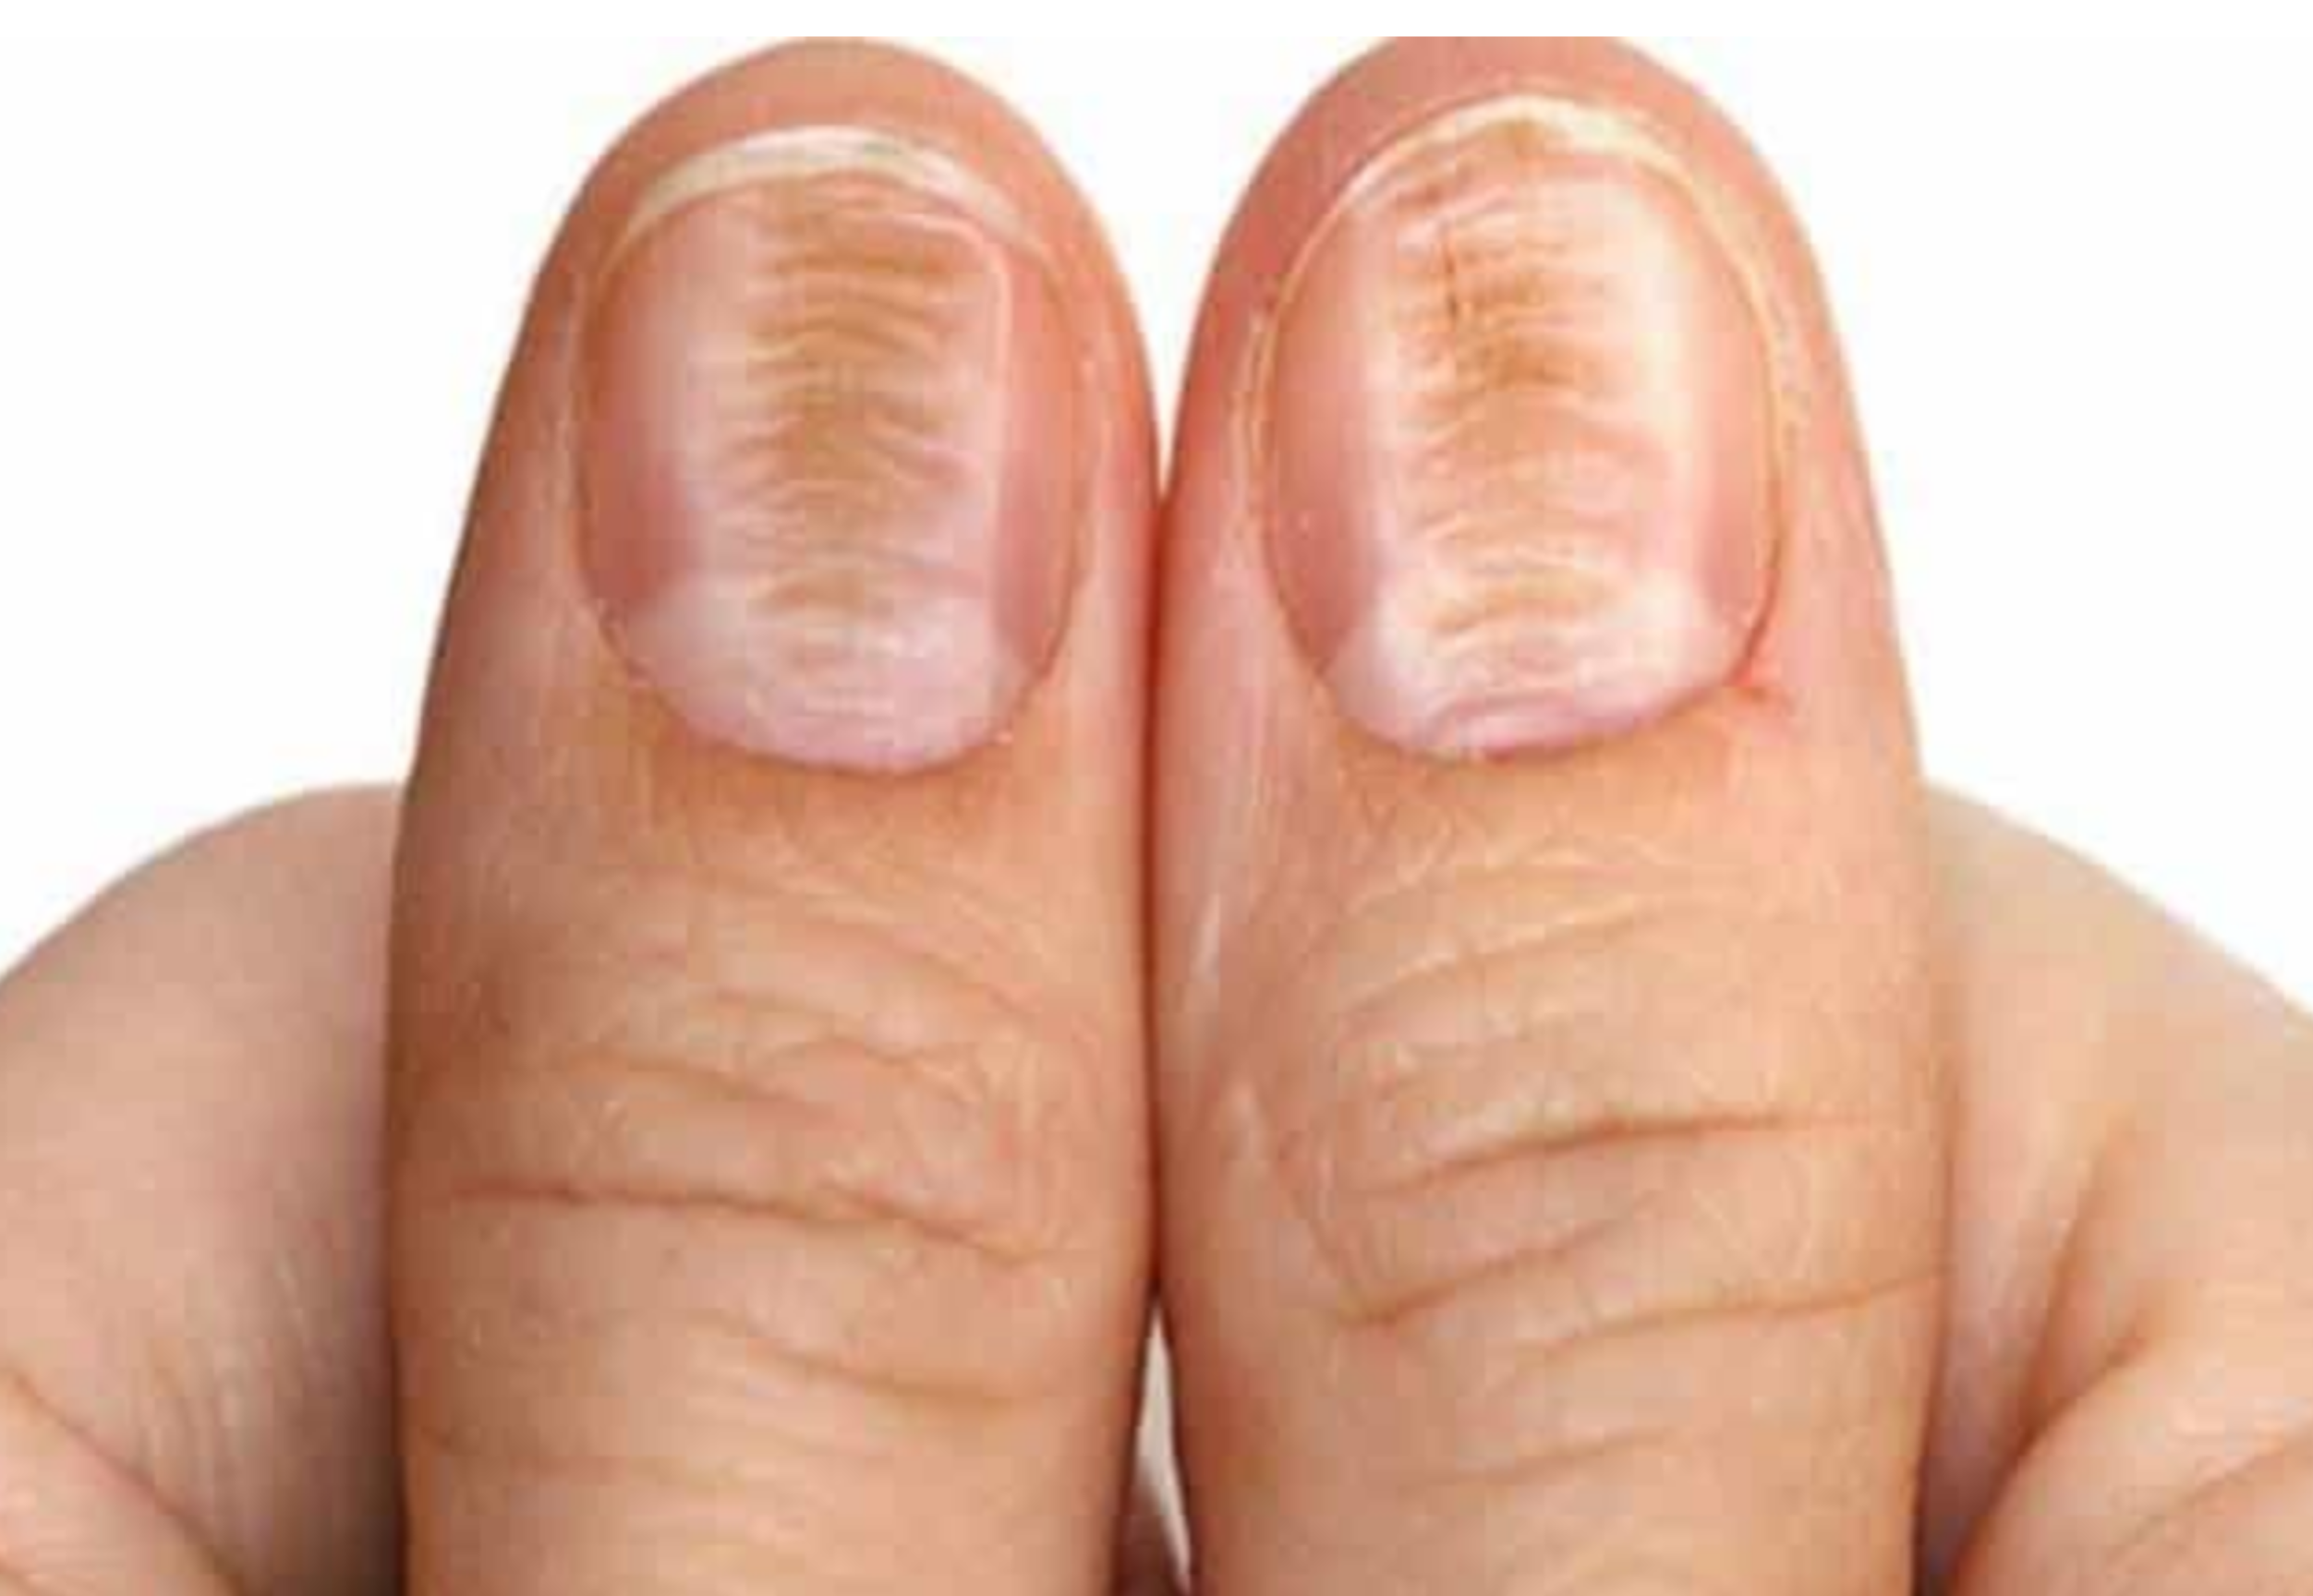 Horizontal Nail Ridges Can Indicate B1 Deficiency